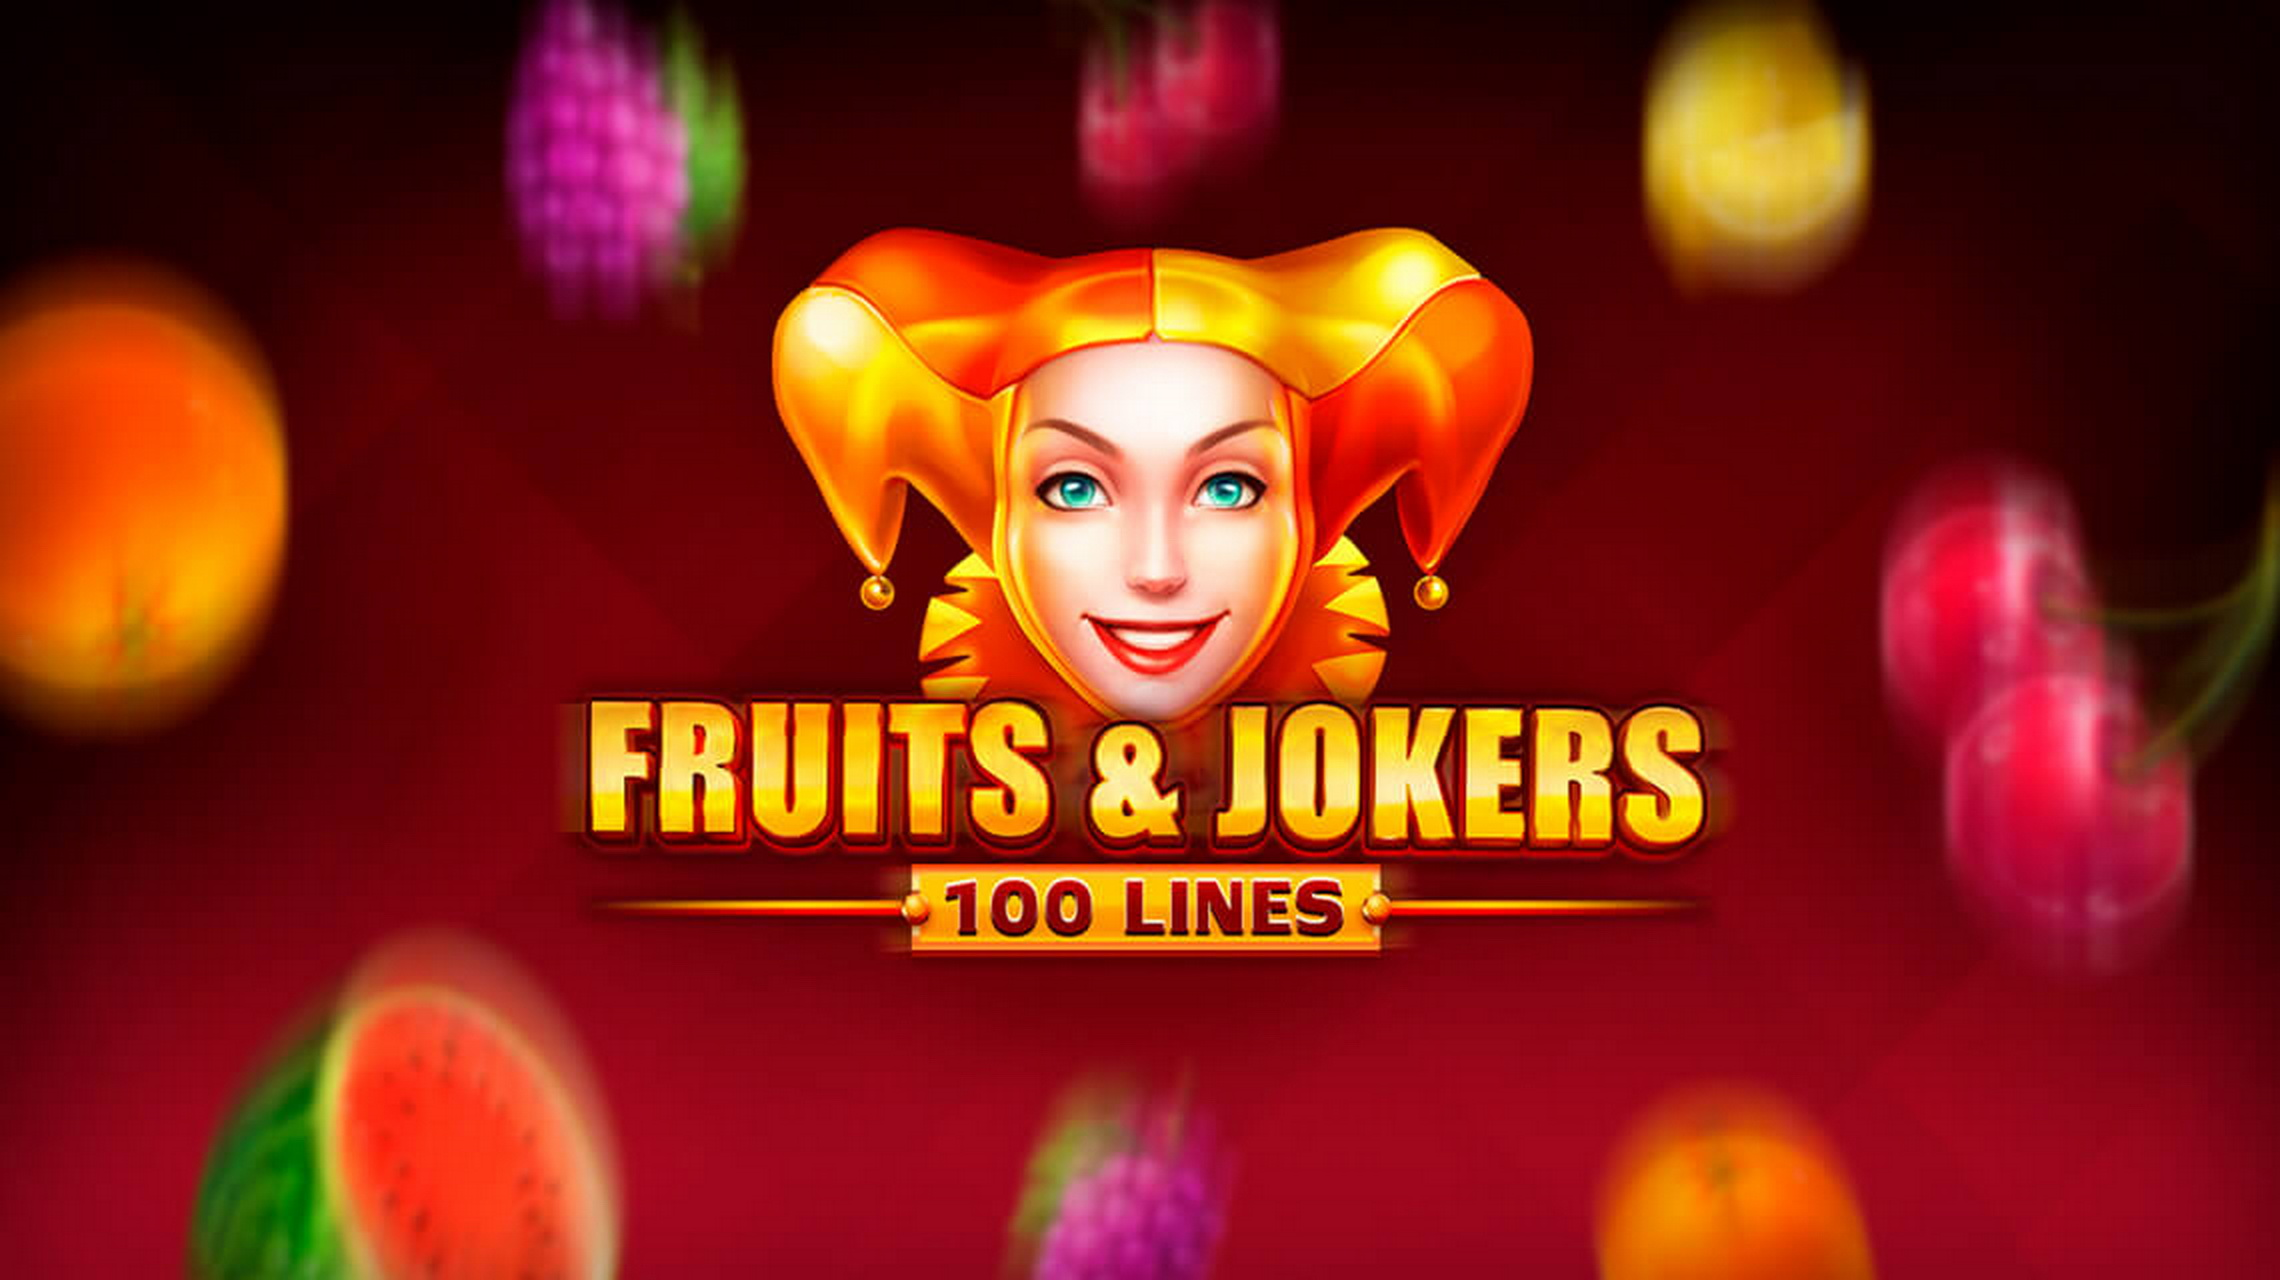 The Fruits & Joker Online Slot Demo Game by Playson